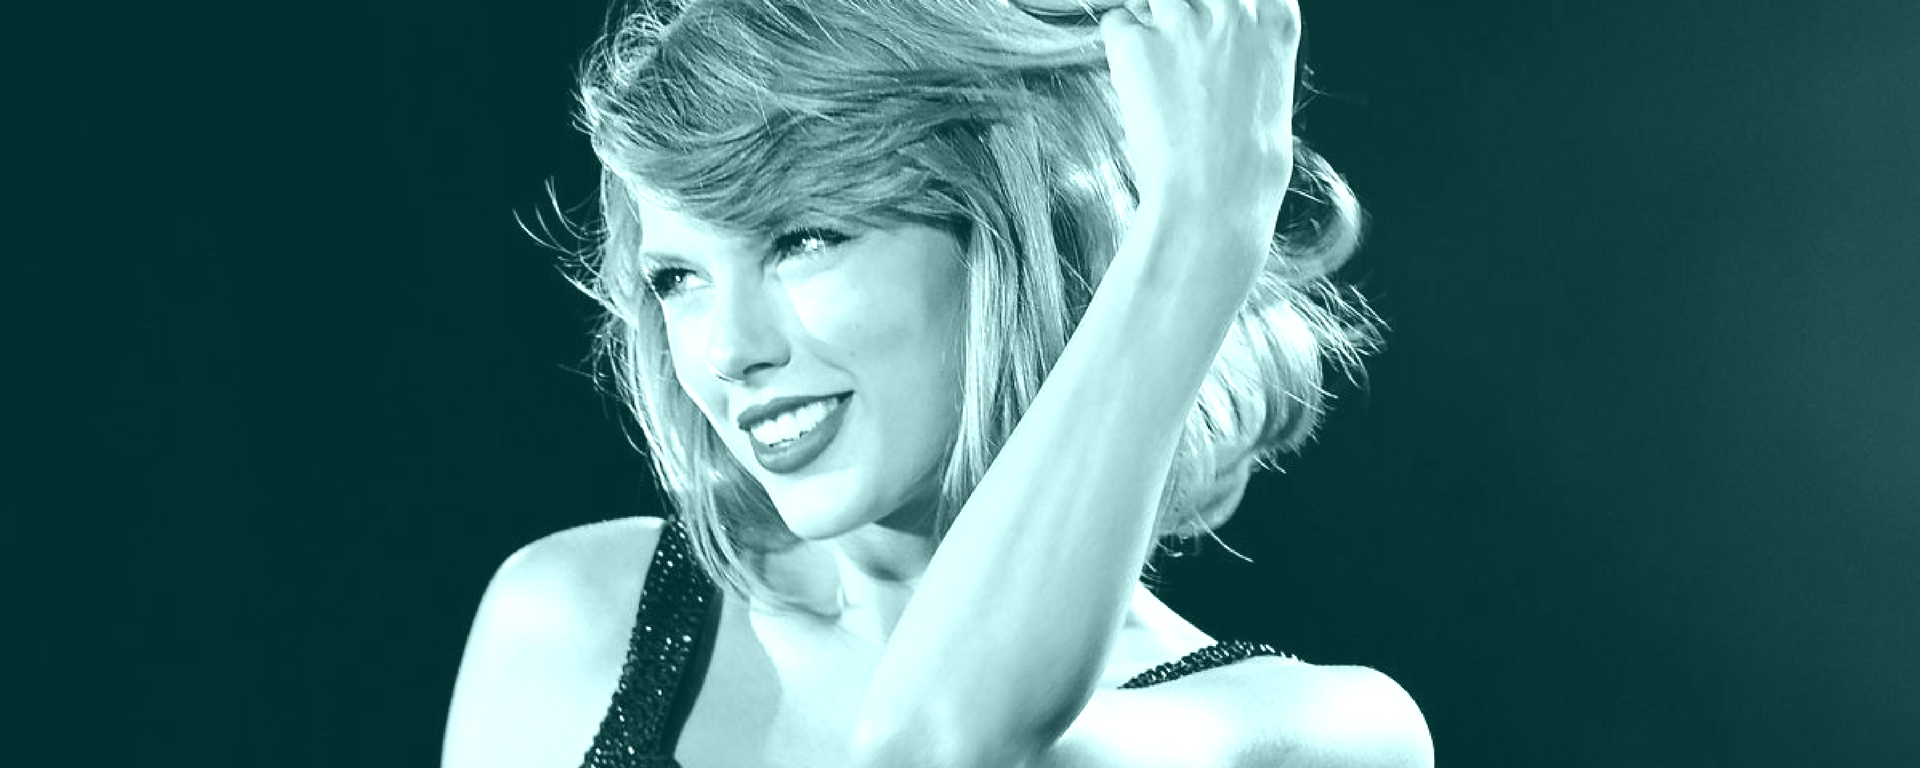 Compleanno Taylor Swift